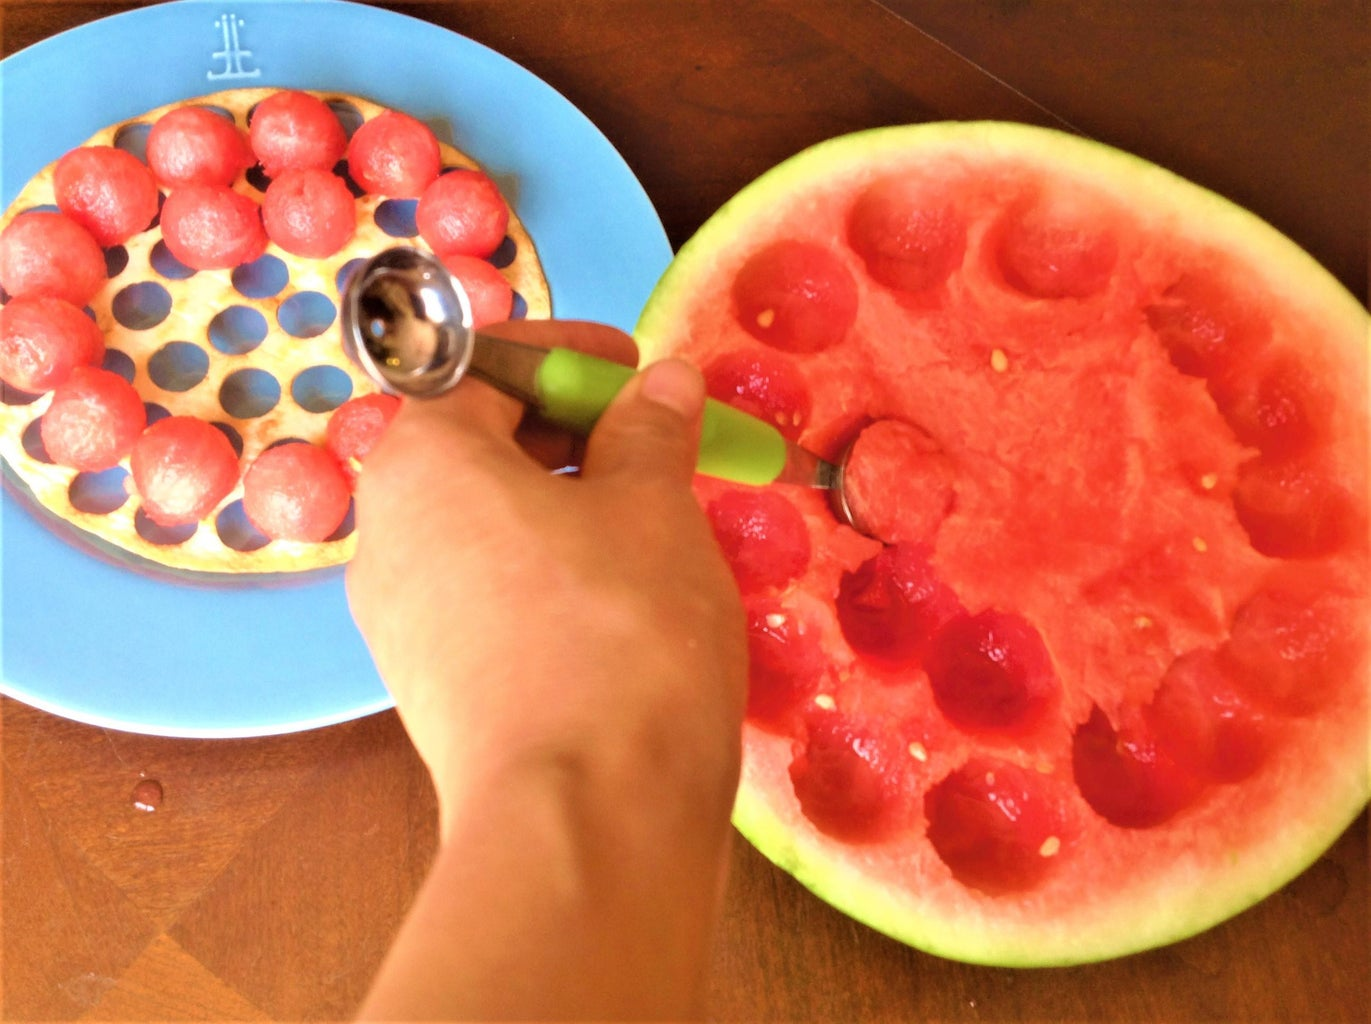 Ball Melon, Mix All Ingredients, and Serve